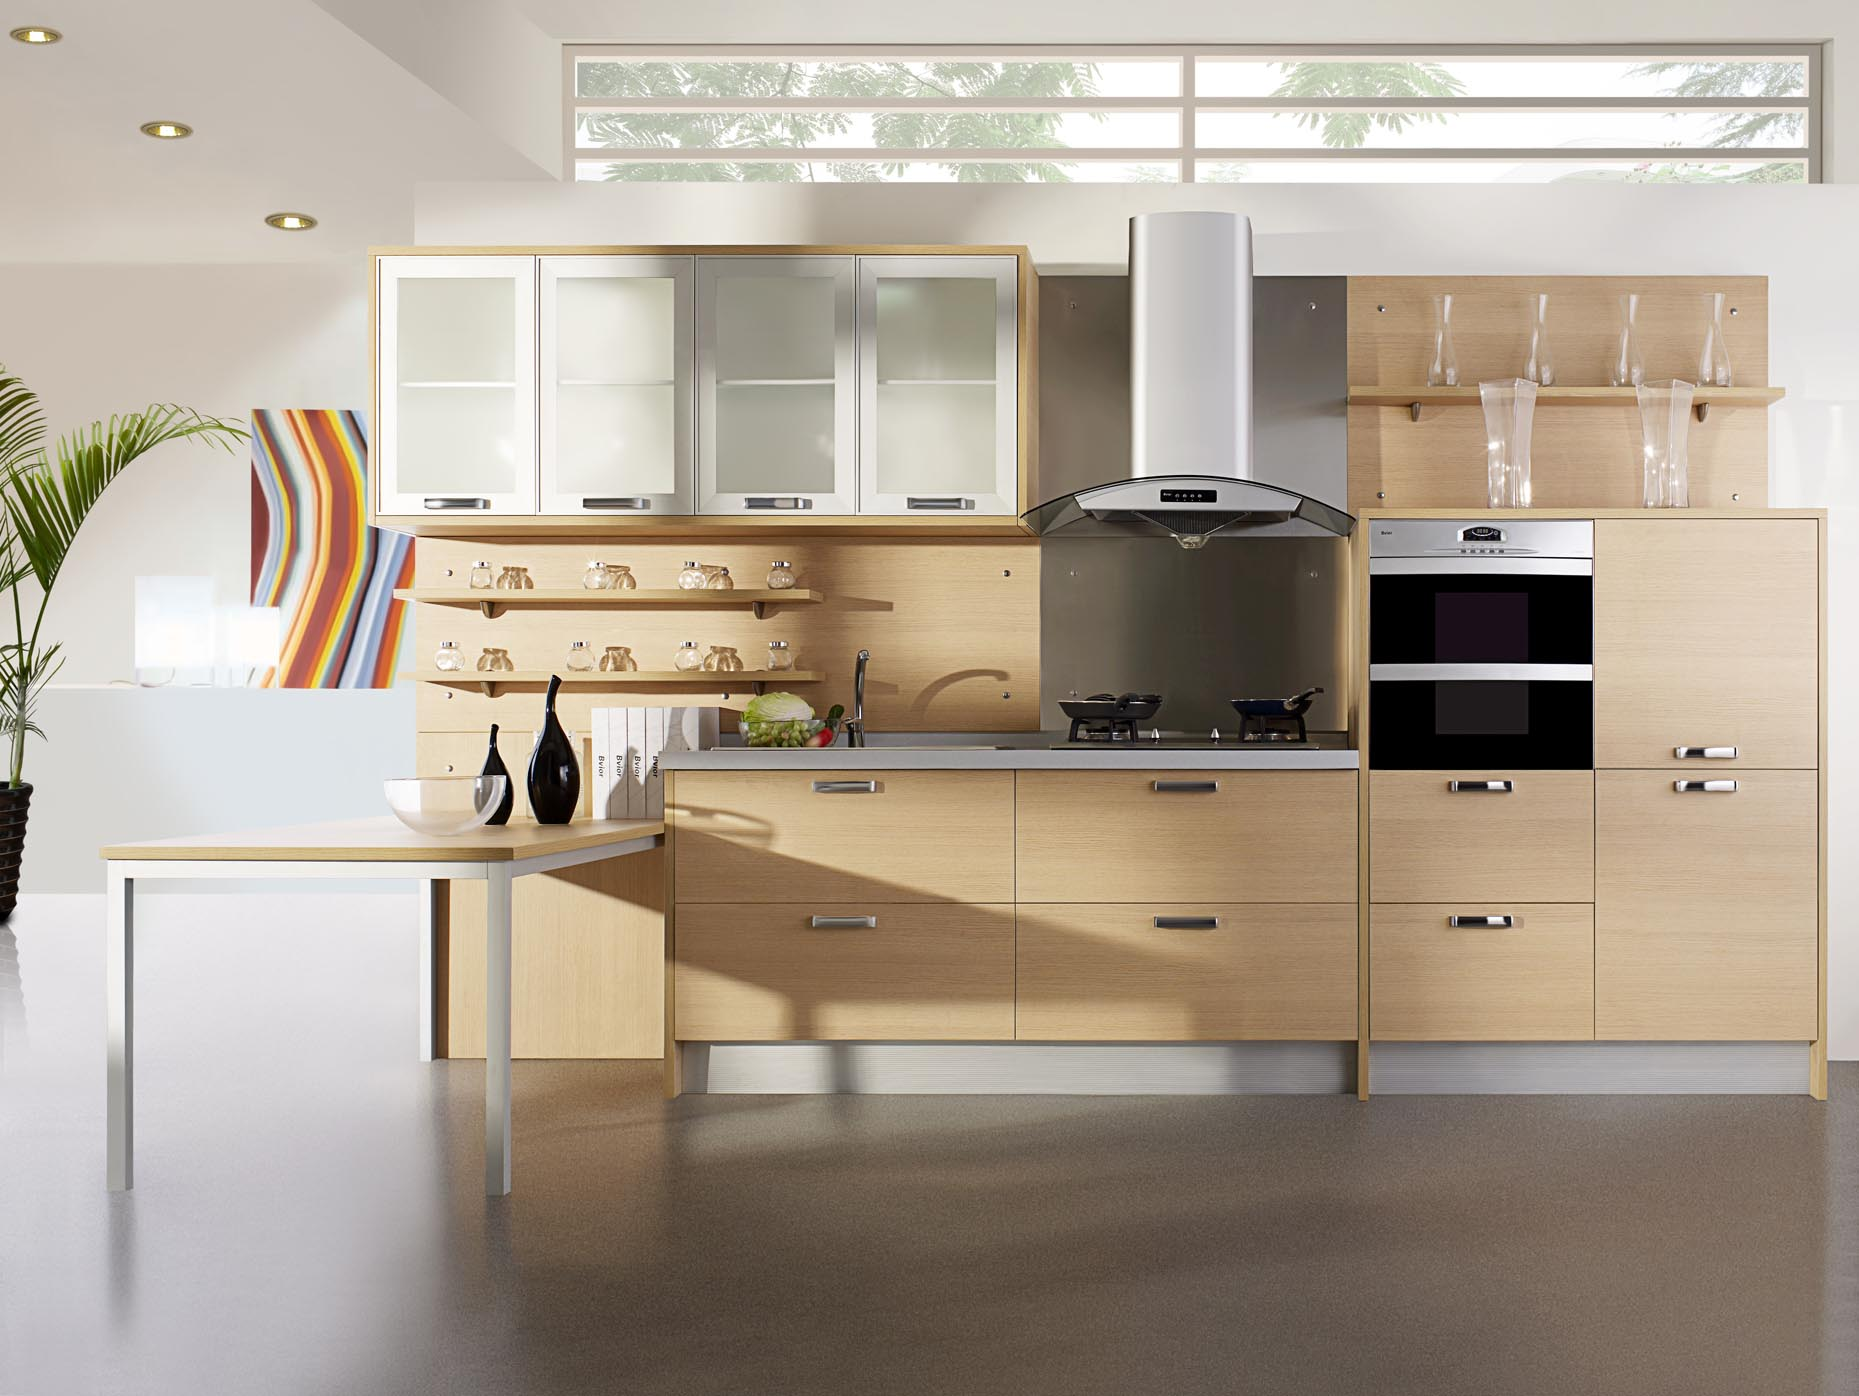 What makes wood cabinets a great choice tdl articles for High level kitchen units